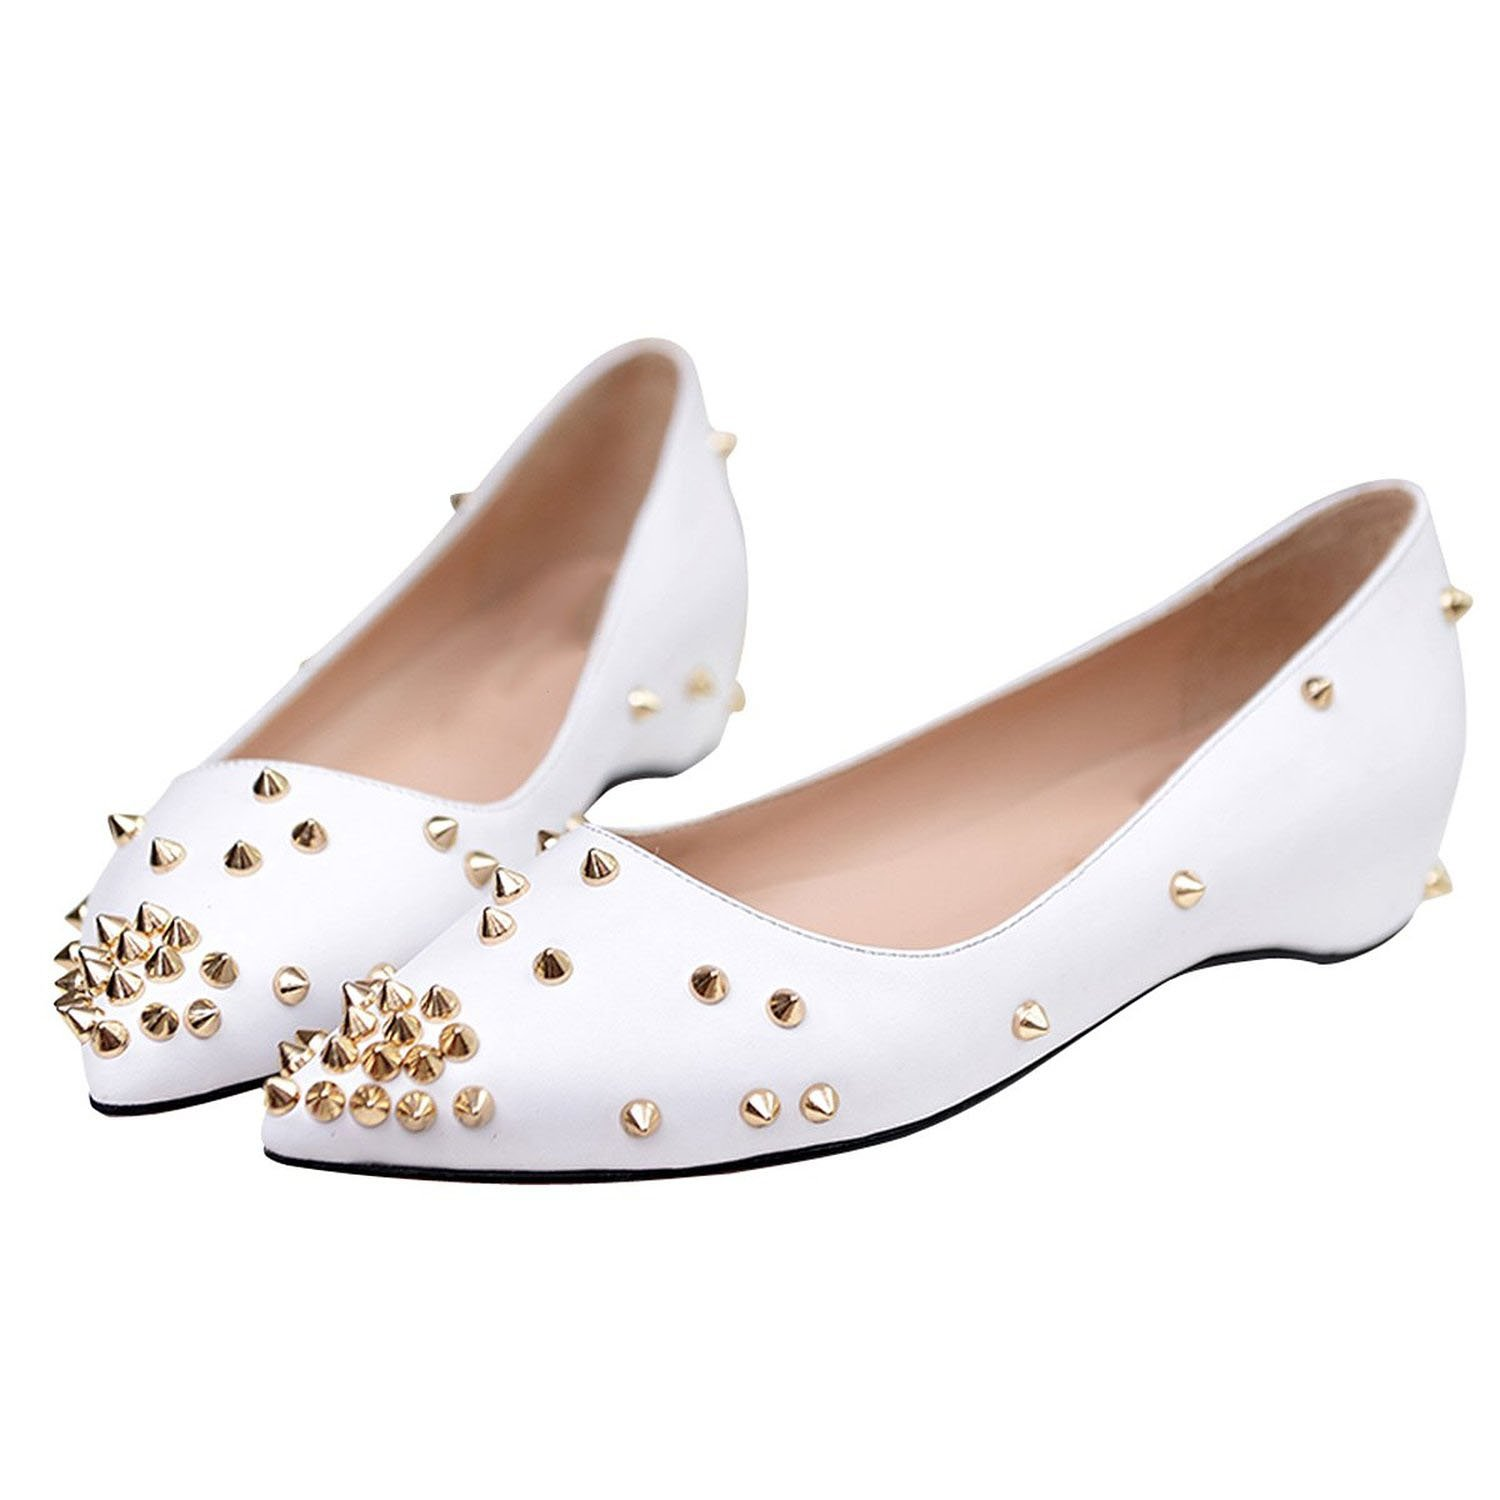 Arc-en-Ciel007 Women's Shoes Studded Patent Leather Flat B07D2J6573 10 B(M) US|White